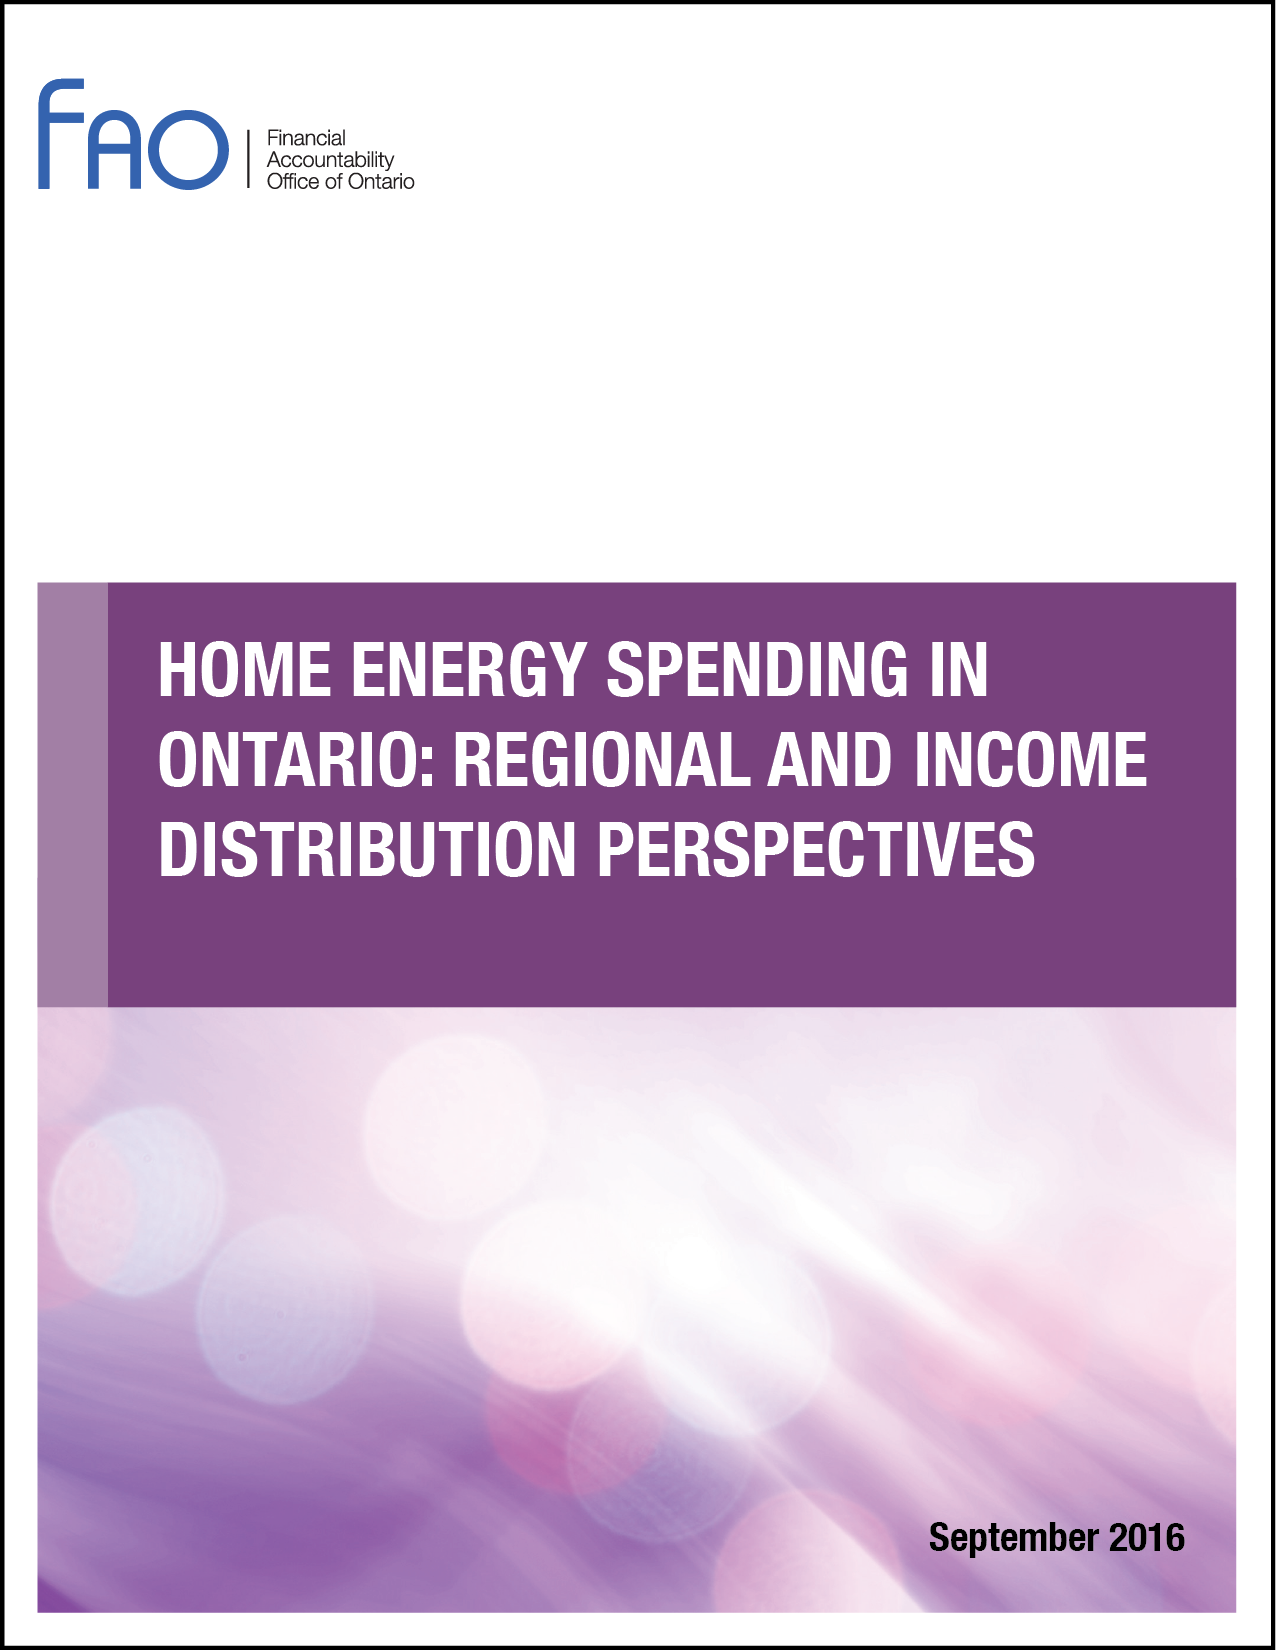 Home Energy Spending in Ontario: Regional and Income Distribution Perspectives